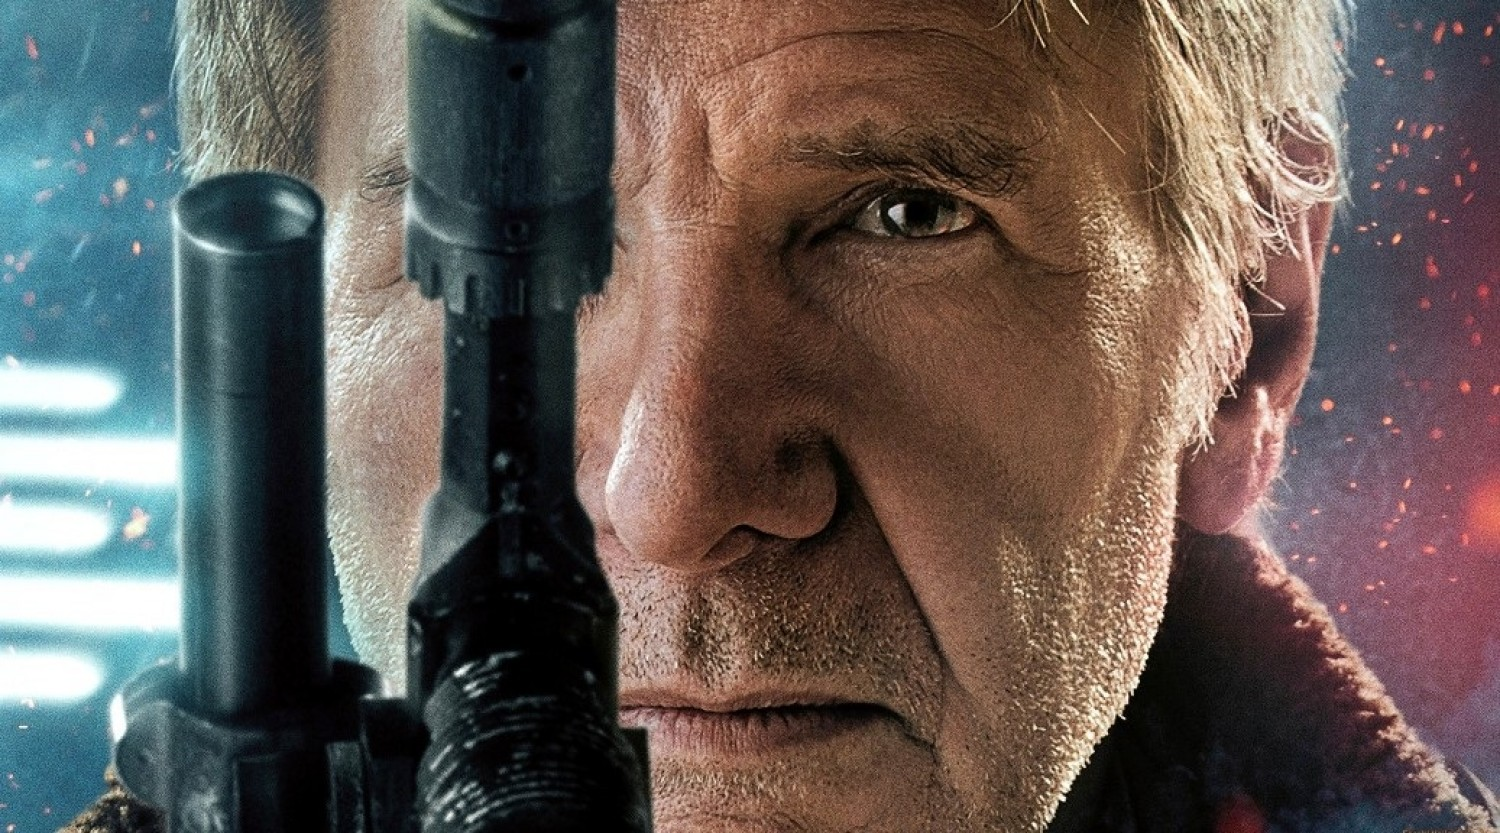 Star Wars: The Force Awakens (2015) By J.J. Abrams - [Spoilers] Movie Review